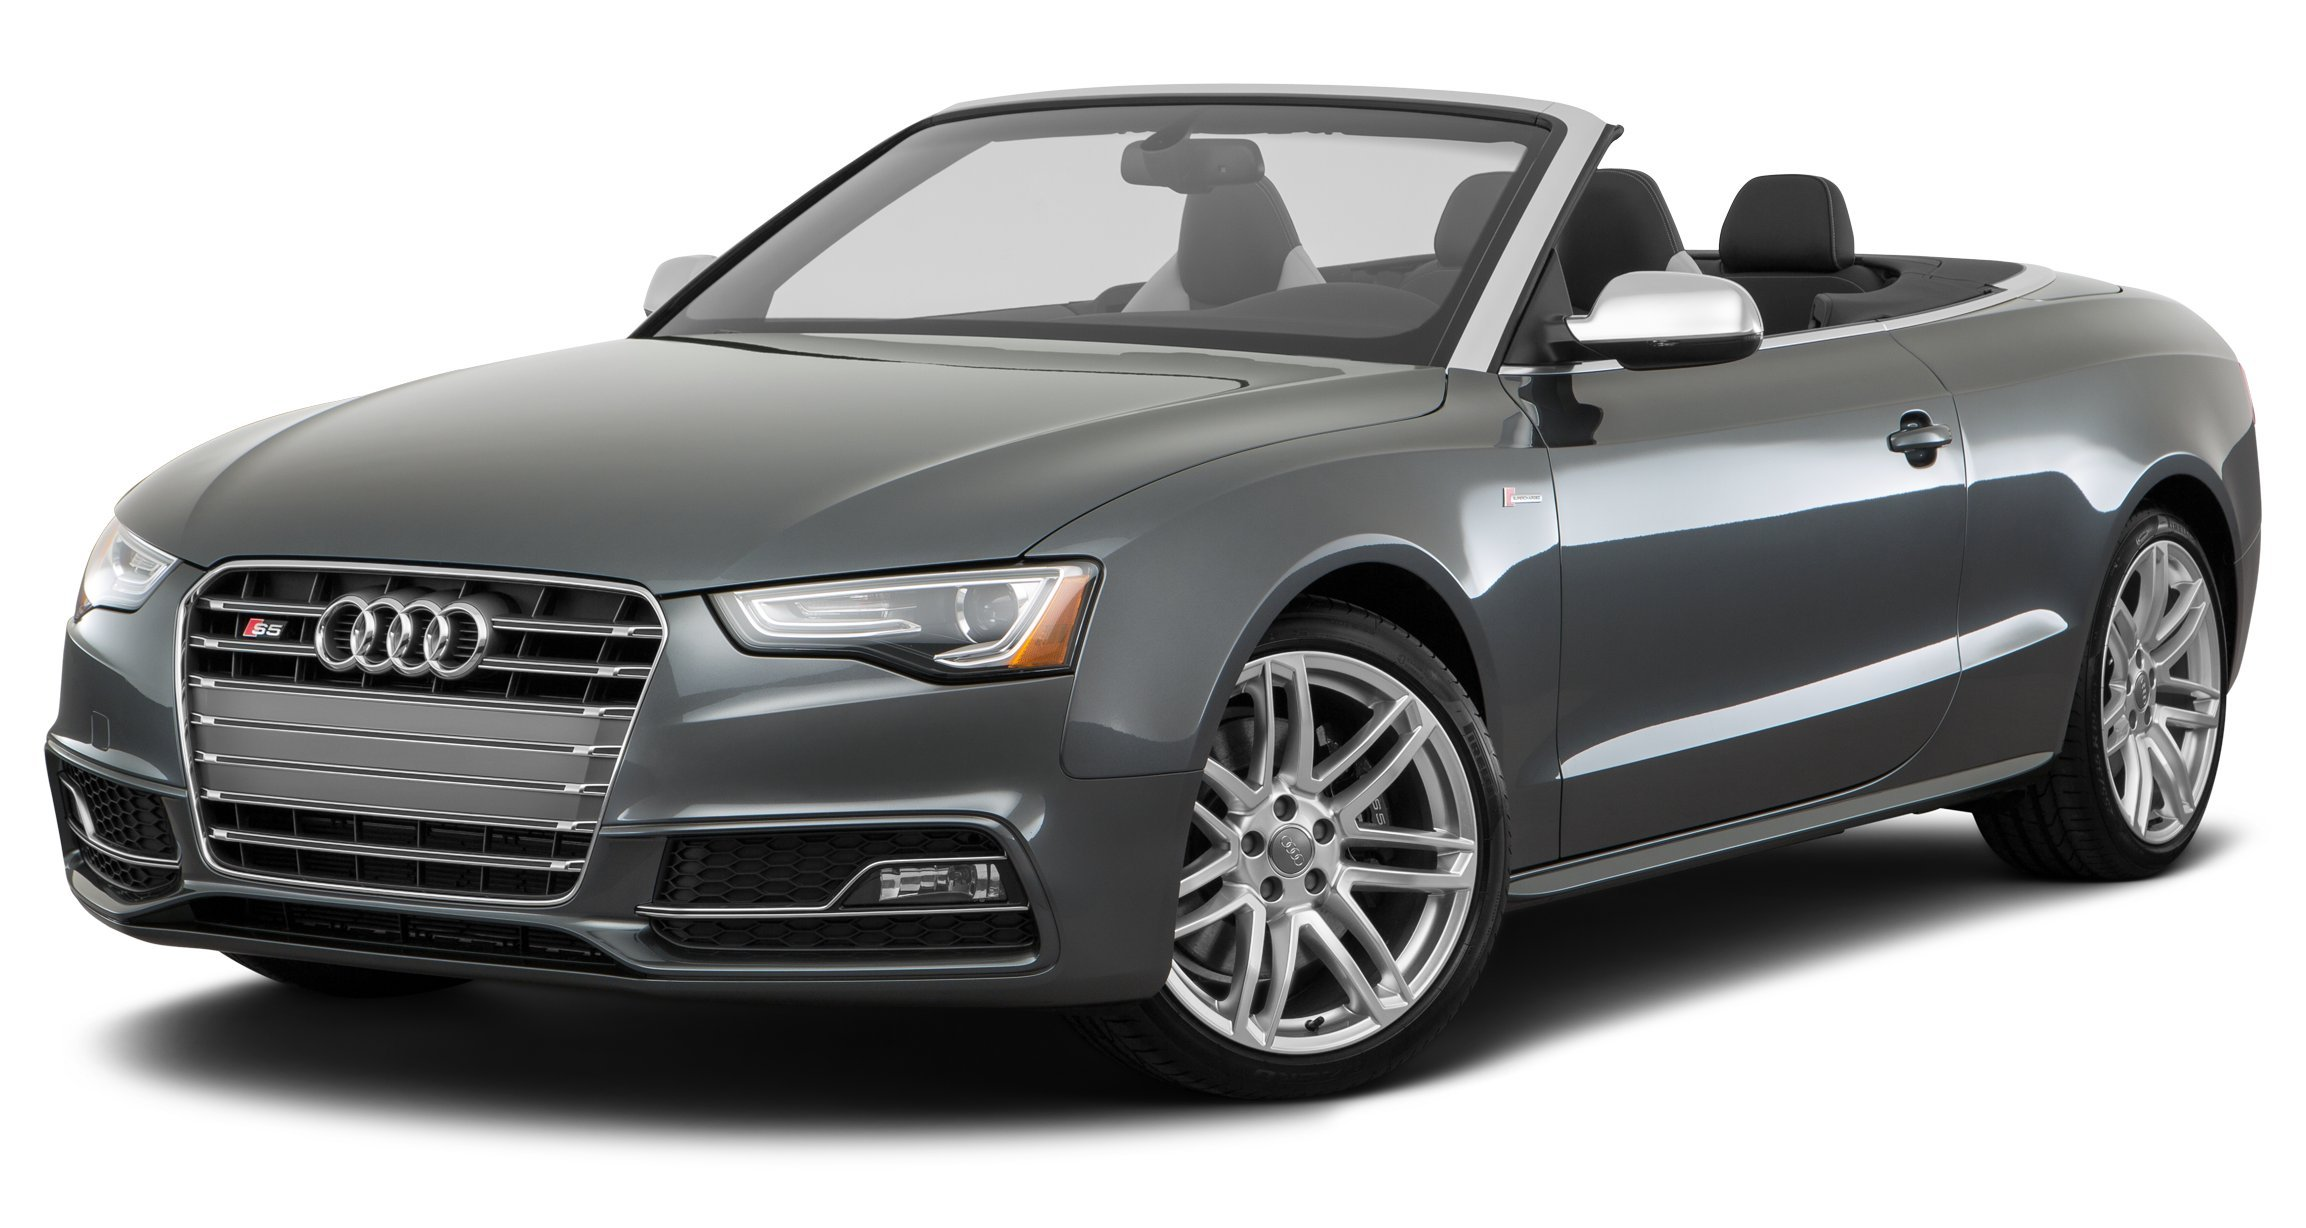 Bmw Dealer Near Me >> Compare Audi S5 And Bmw 435i Video | Autos Post